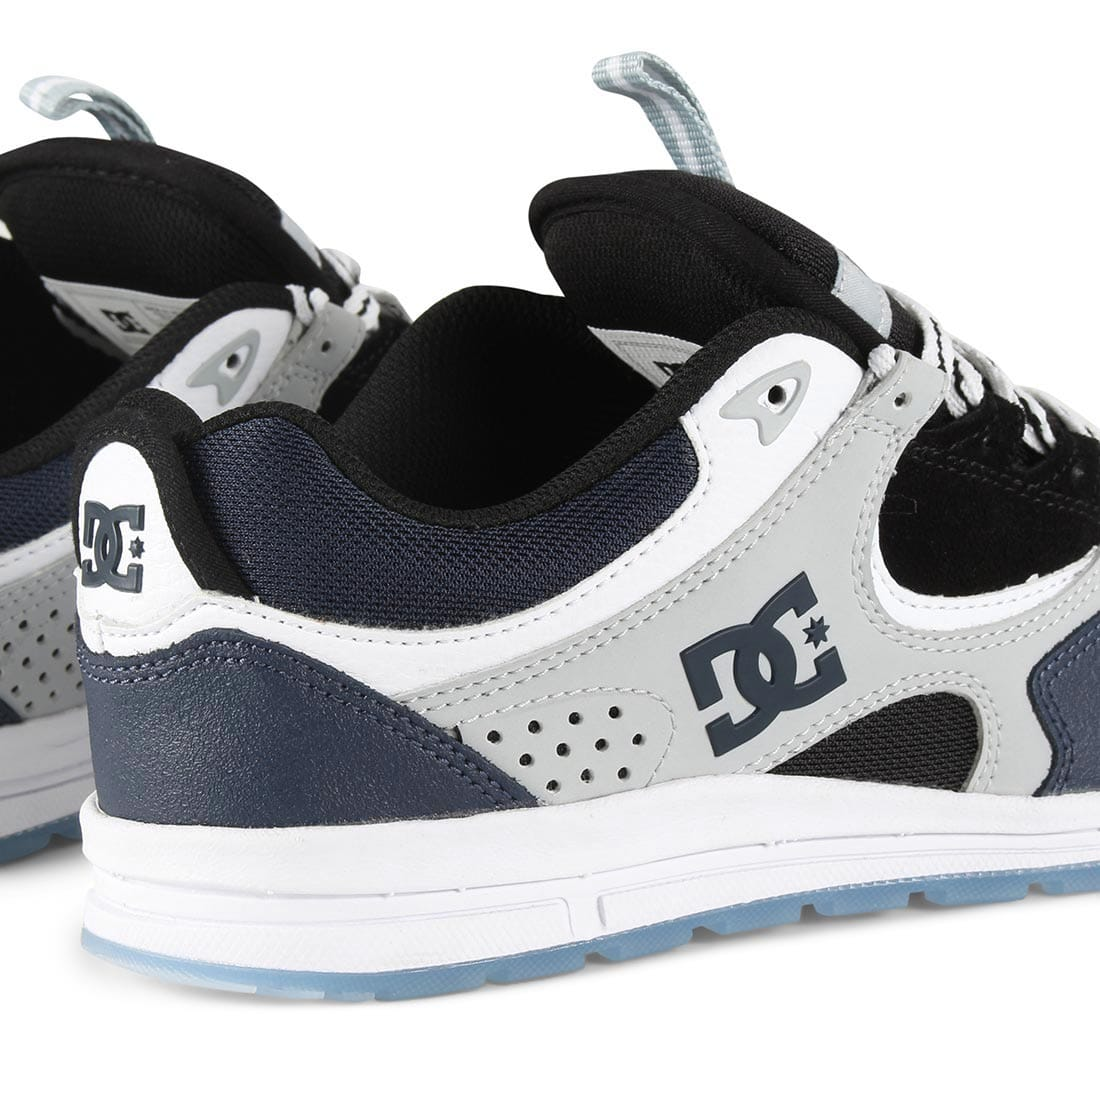 cb92f170b322 Blueblue Dc Shoes - -+9000 Best All Room Decorating Ideas & Designs